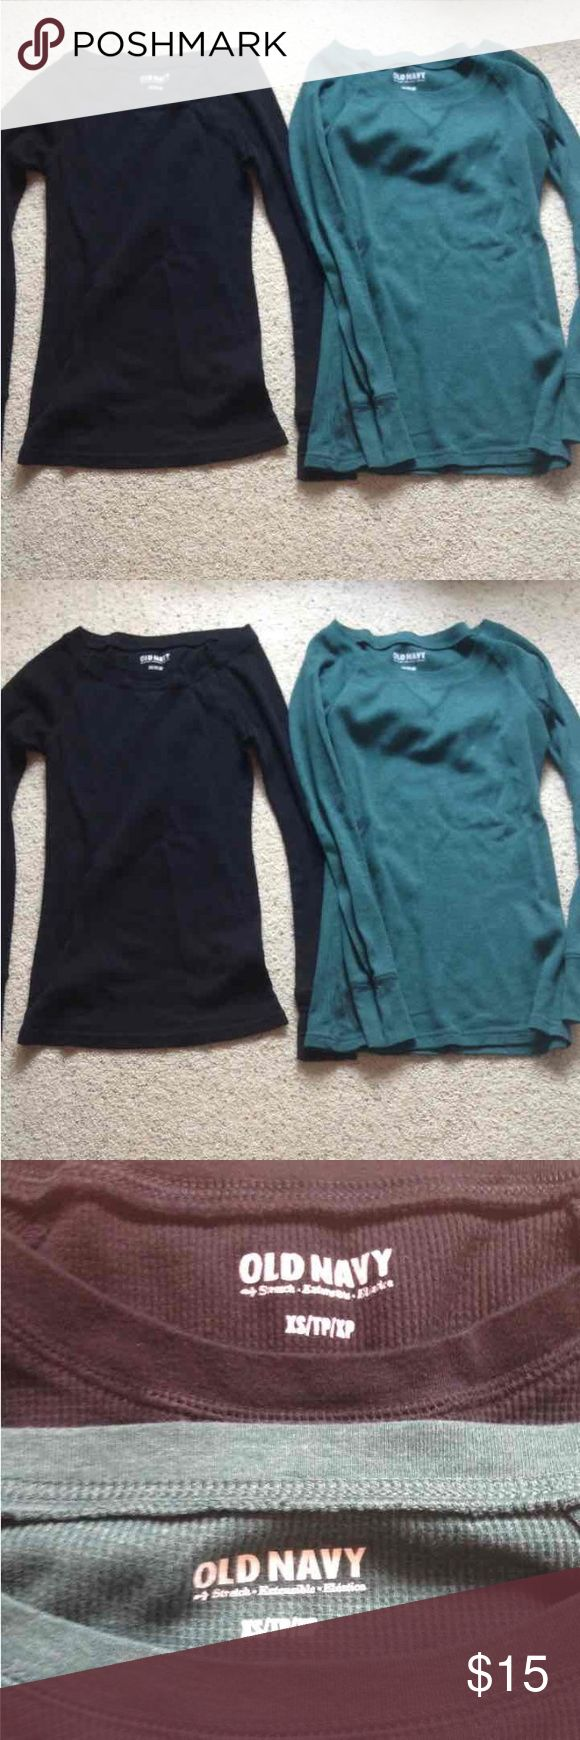 Old Navy Thermal Long Sleeves Bundle Great condition! Two thermal long sleeve tops both xs. Black and dark green. These shirts are so comfy and make your ta tas look sooo good! Seriously though! Open to offers:) Tops Tees - Long Sleeve